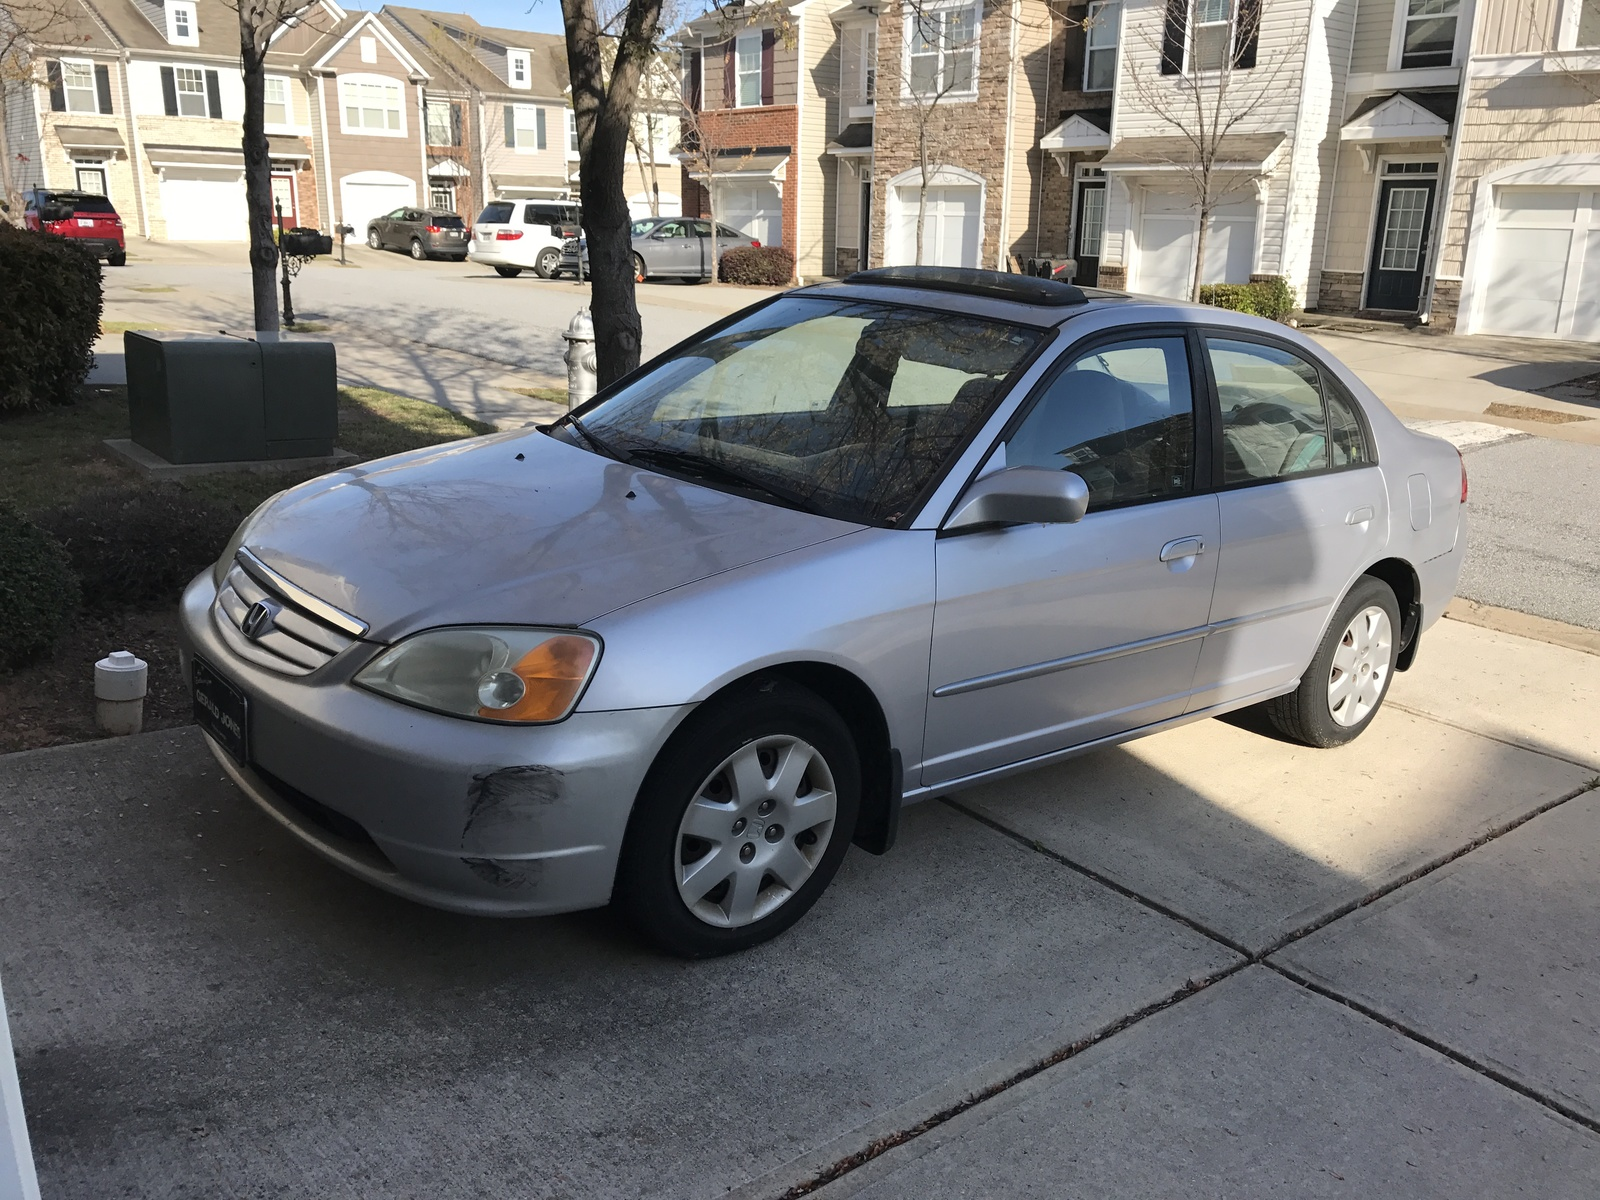 honda civic questions i have a honda civic 2002 ex sedan with 200 000 miles but the care doe. Black Bedroom Furniture Sets. Home Design Ideas